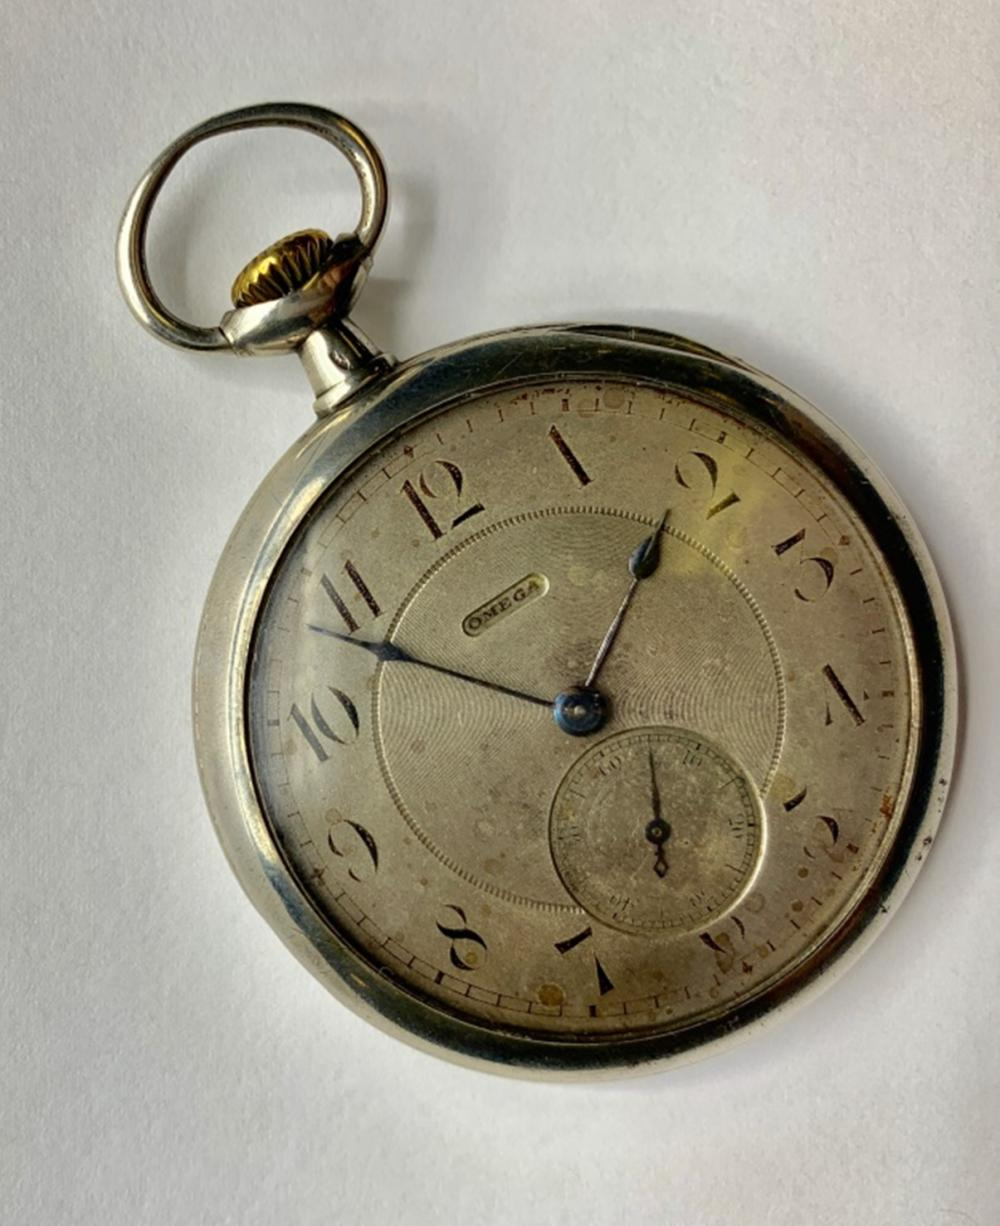 16 SIZE OMEGA OPEN FACE  POCKET WATCH